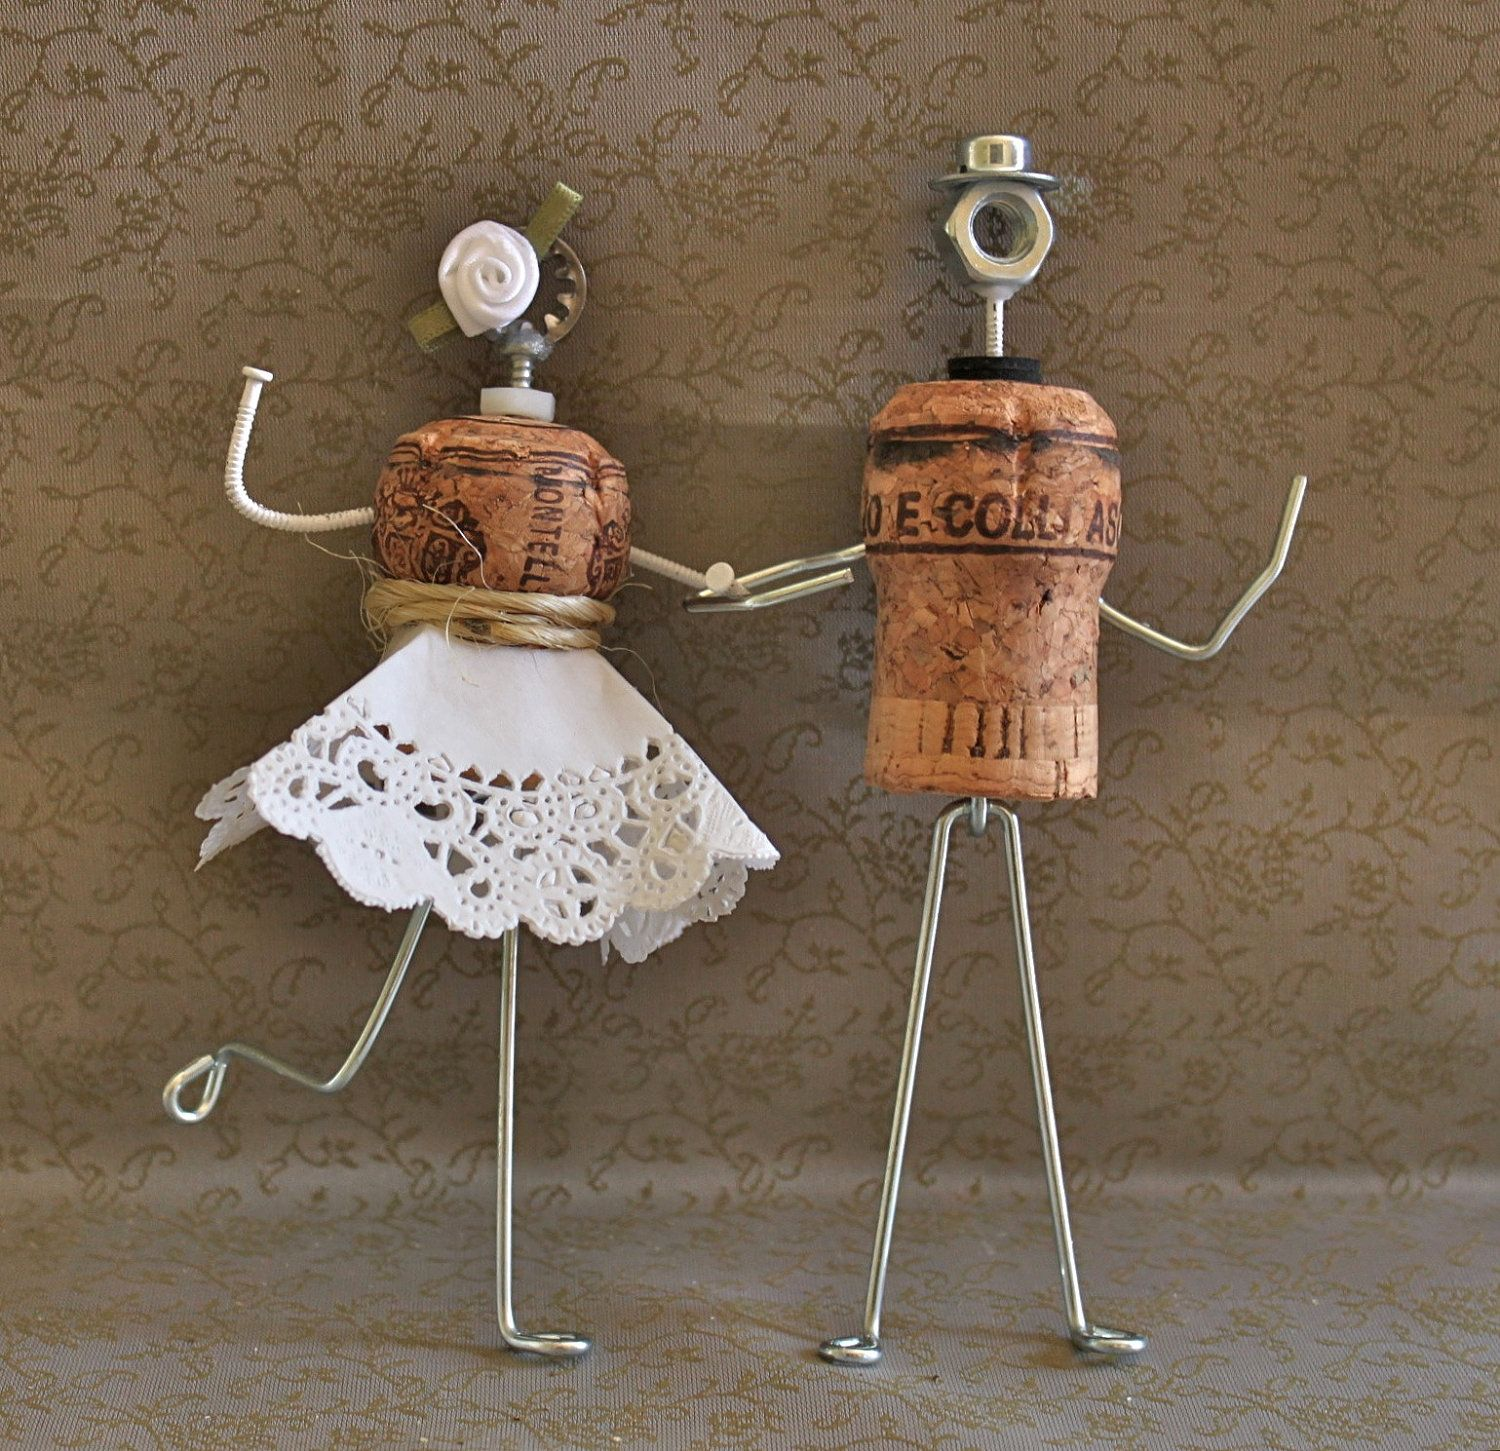 Cork Crafts For Weddings: Whimsical Cork Wedding Cake Topper With Dress. $40.00, Via